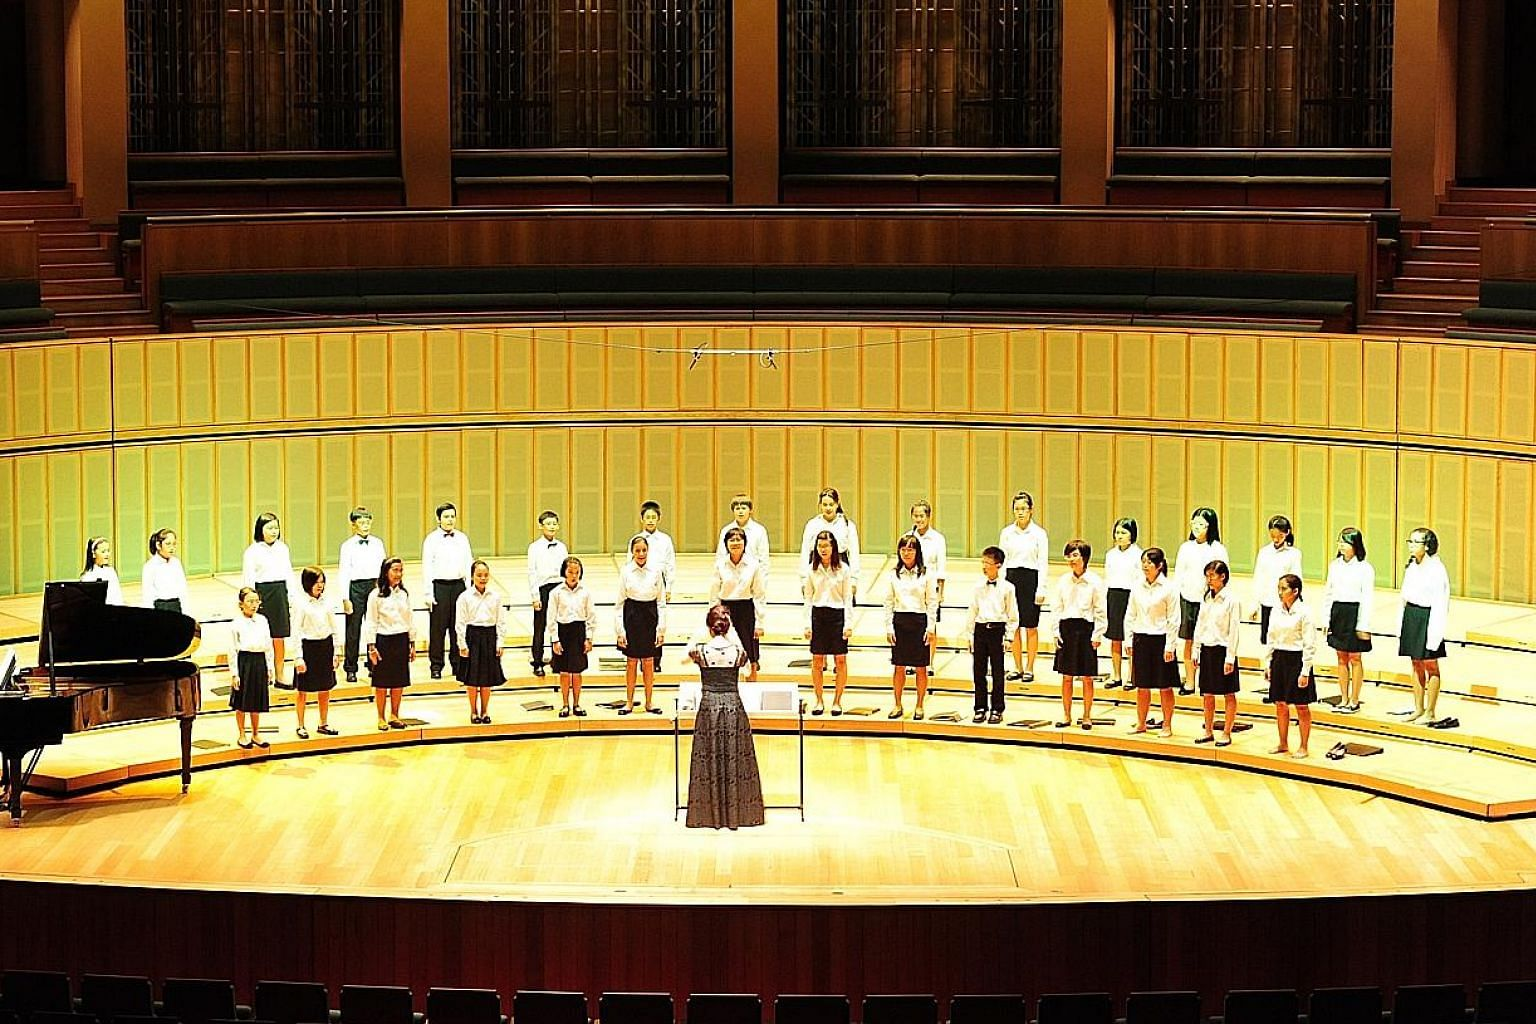 """Parents and teachers should immerse kids in a music environment at any opportunity. Singing is not about """"talent"""" and aiming to qualify for contests like American Idol."""